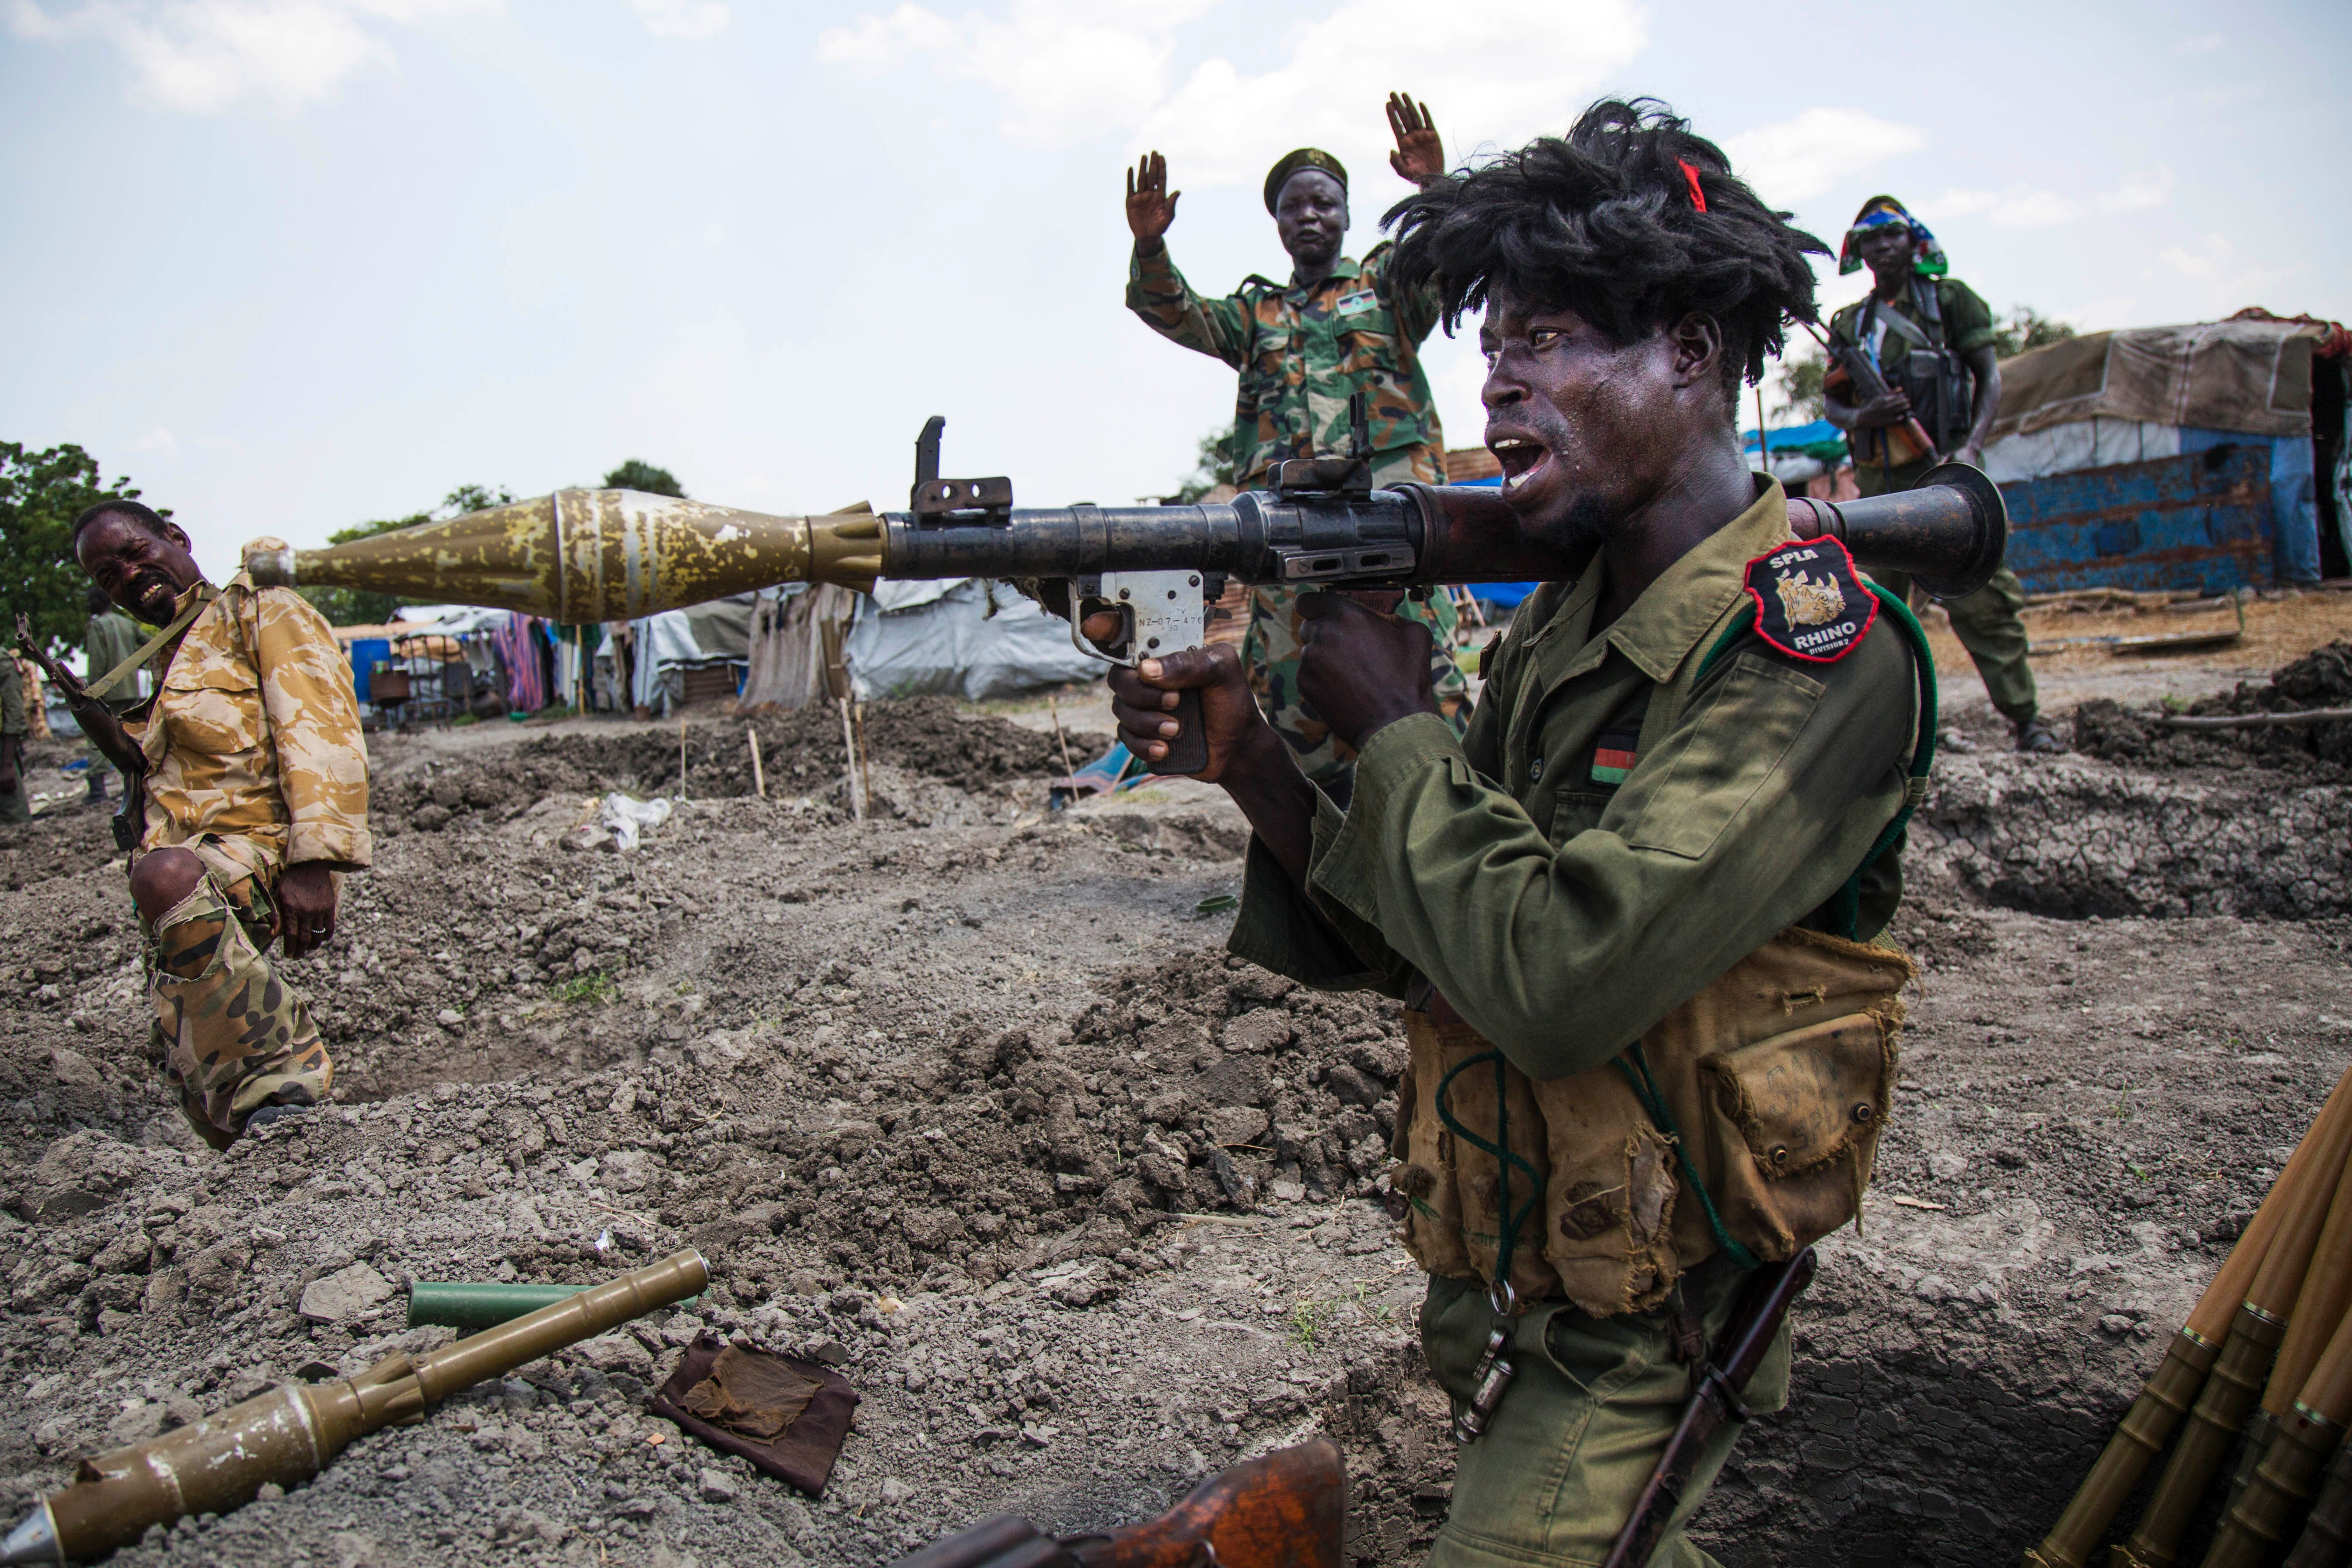 Soldiers of the Sudan People Liberation Army (SPLA) celebrate while standing in trenches in Lelo, outside Malakal, in northern South Sudan, on Oct. 16, 2016